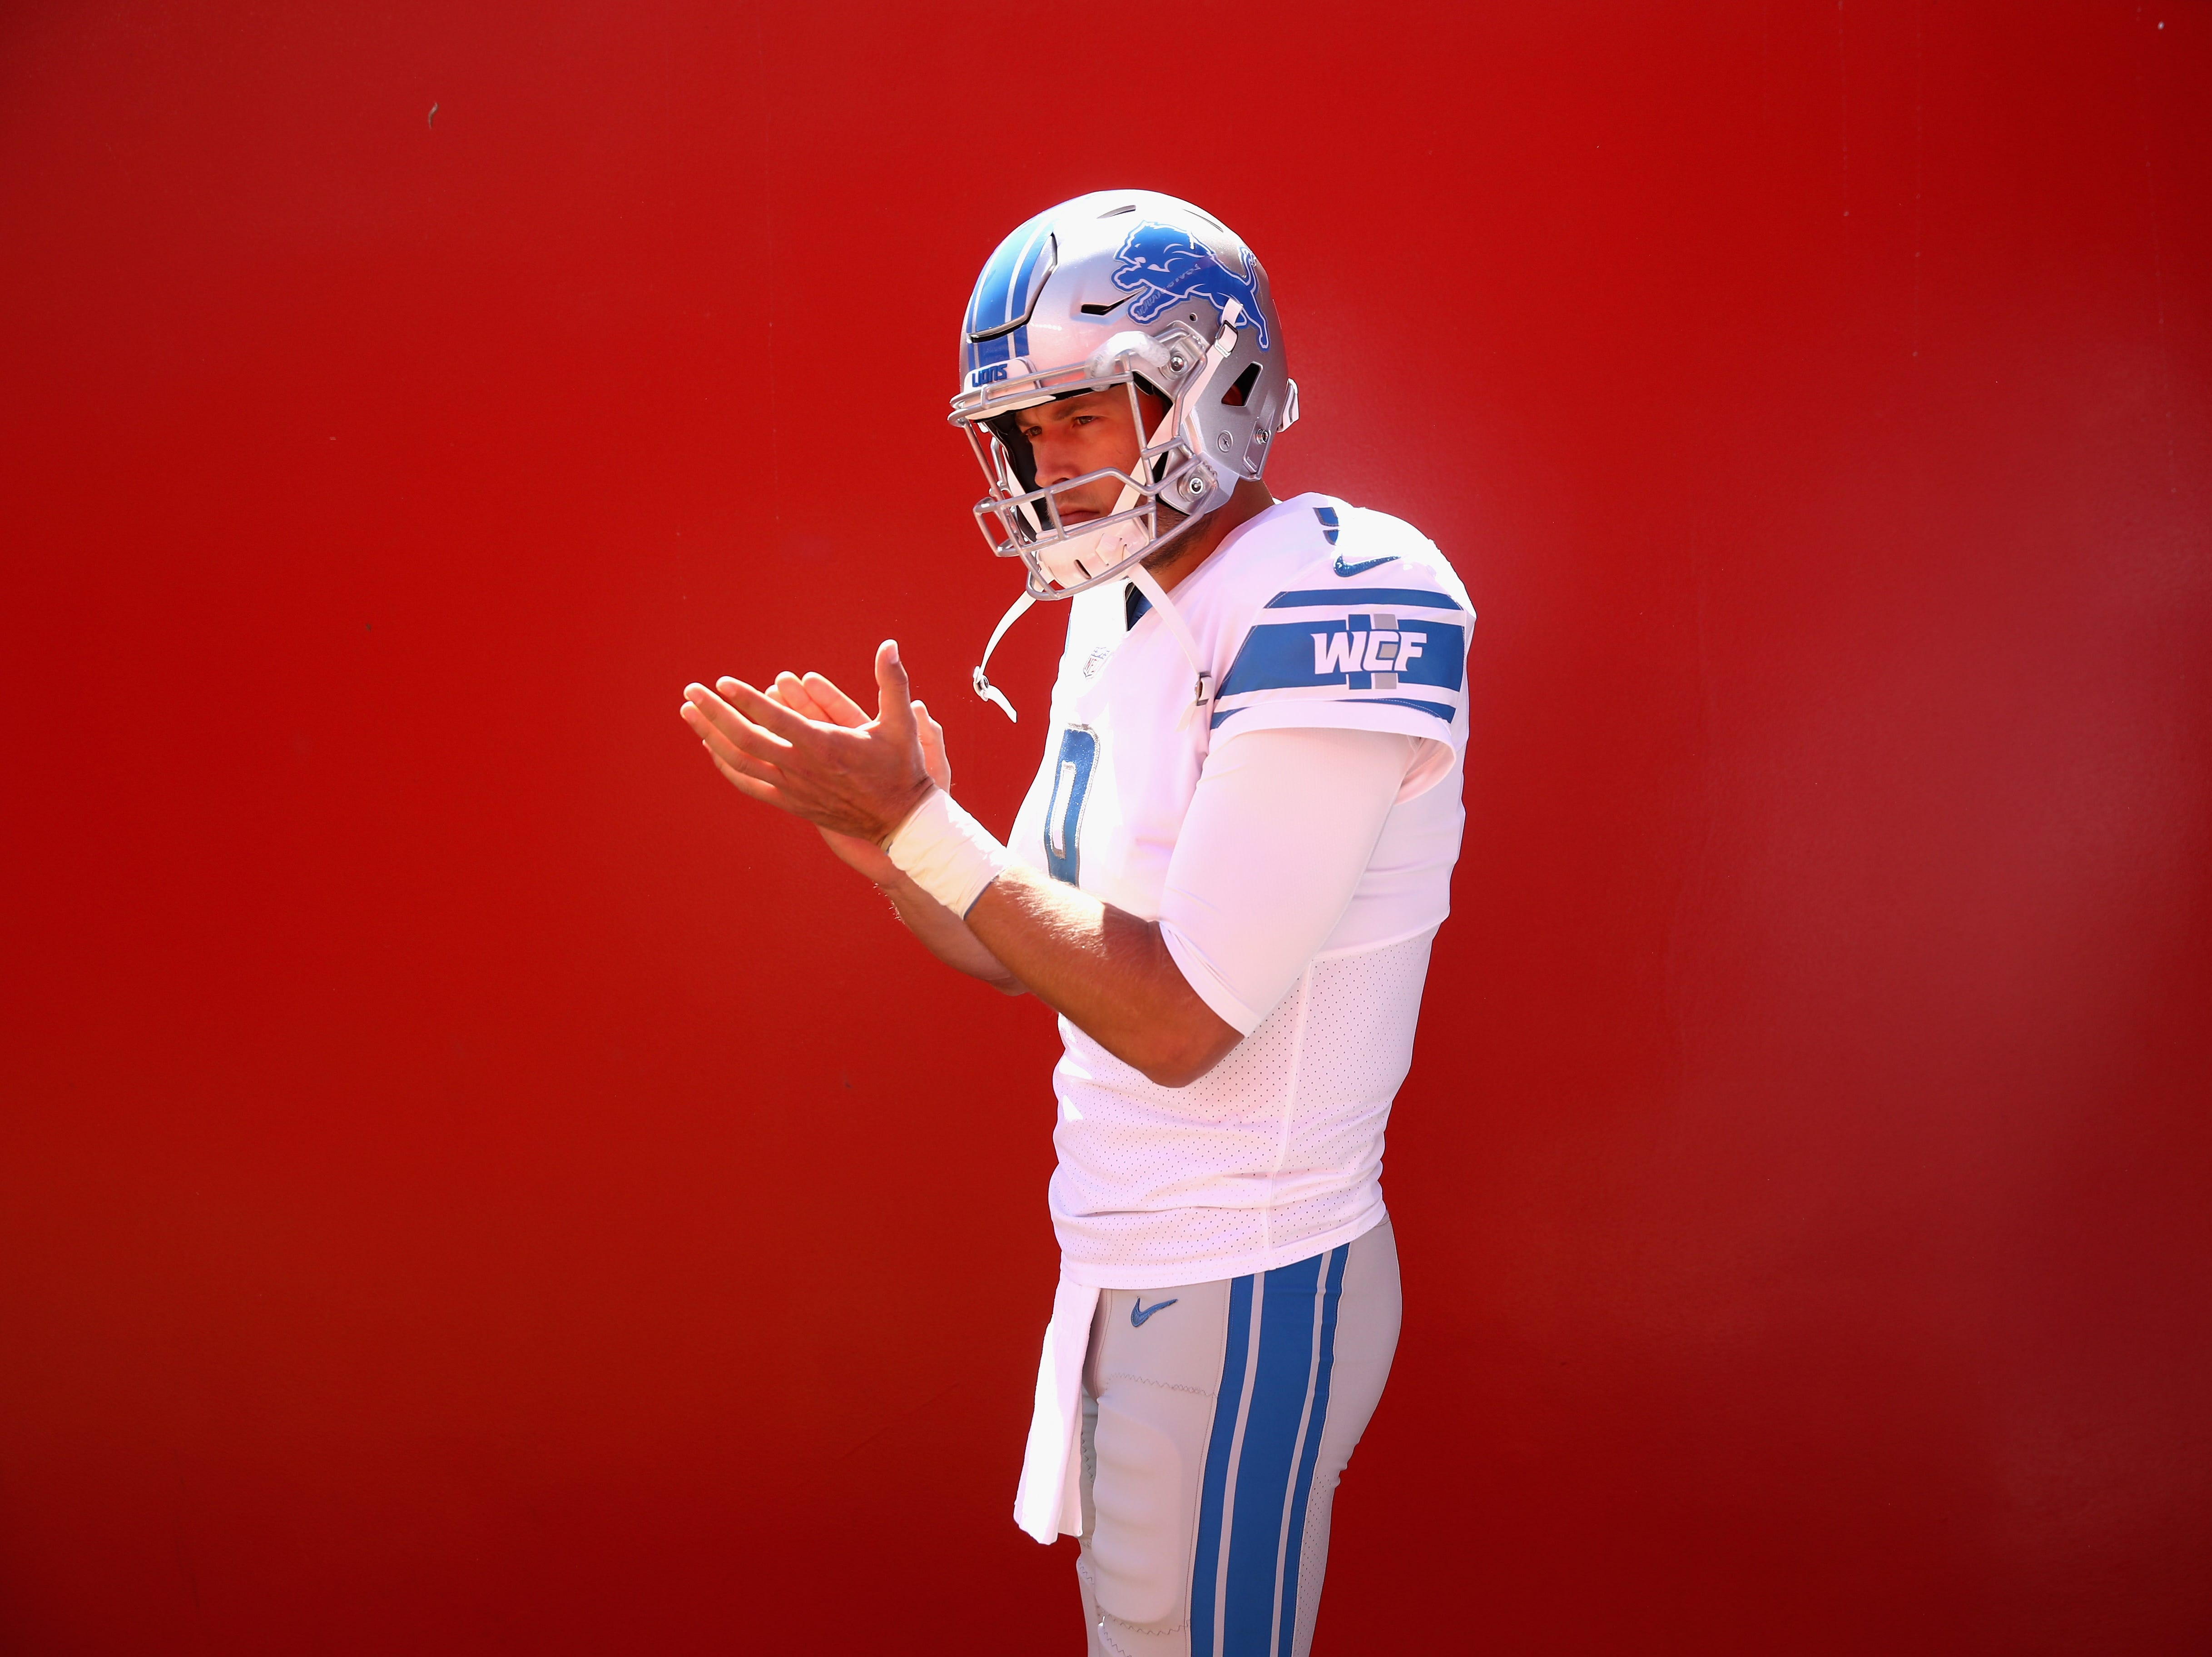 Lions quarterback Matthew Stafford stands in the tunnel before their game against the San Francisco 49ers on Sunday, Sept. 16, 2018, in Santa Clara, Calif.